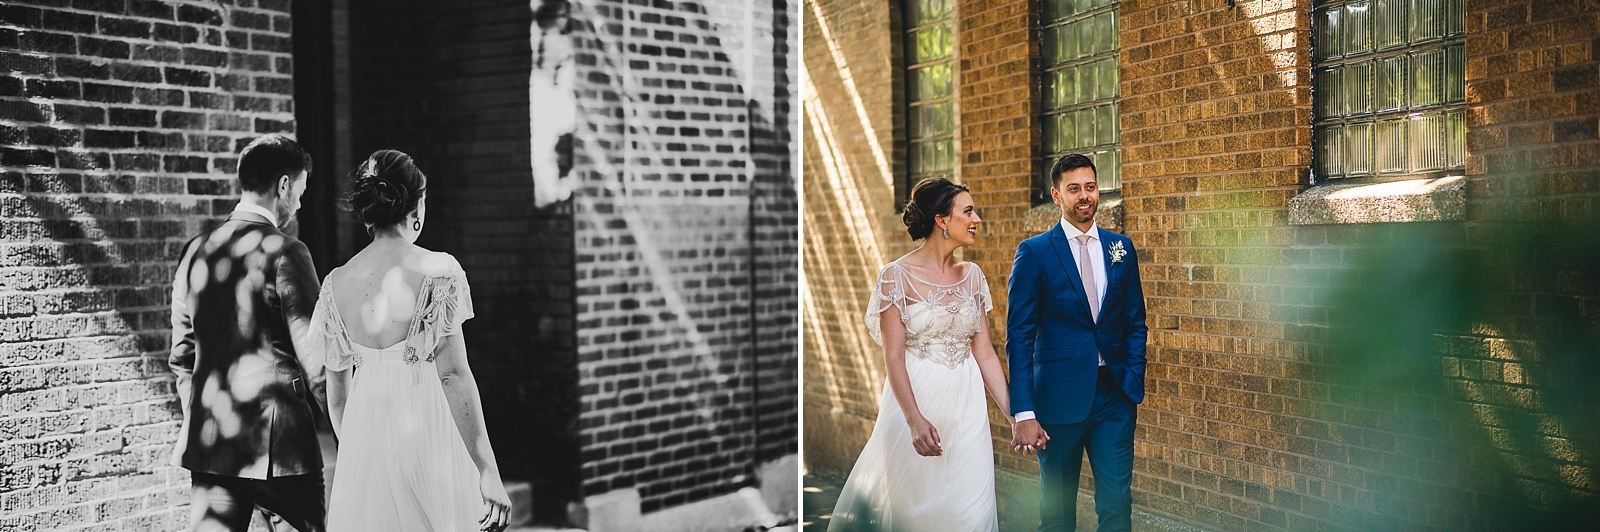 24 bride groom portraits around salvage one - Salvage One Wedding // Pearl + Ken